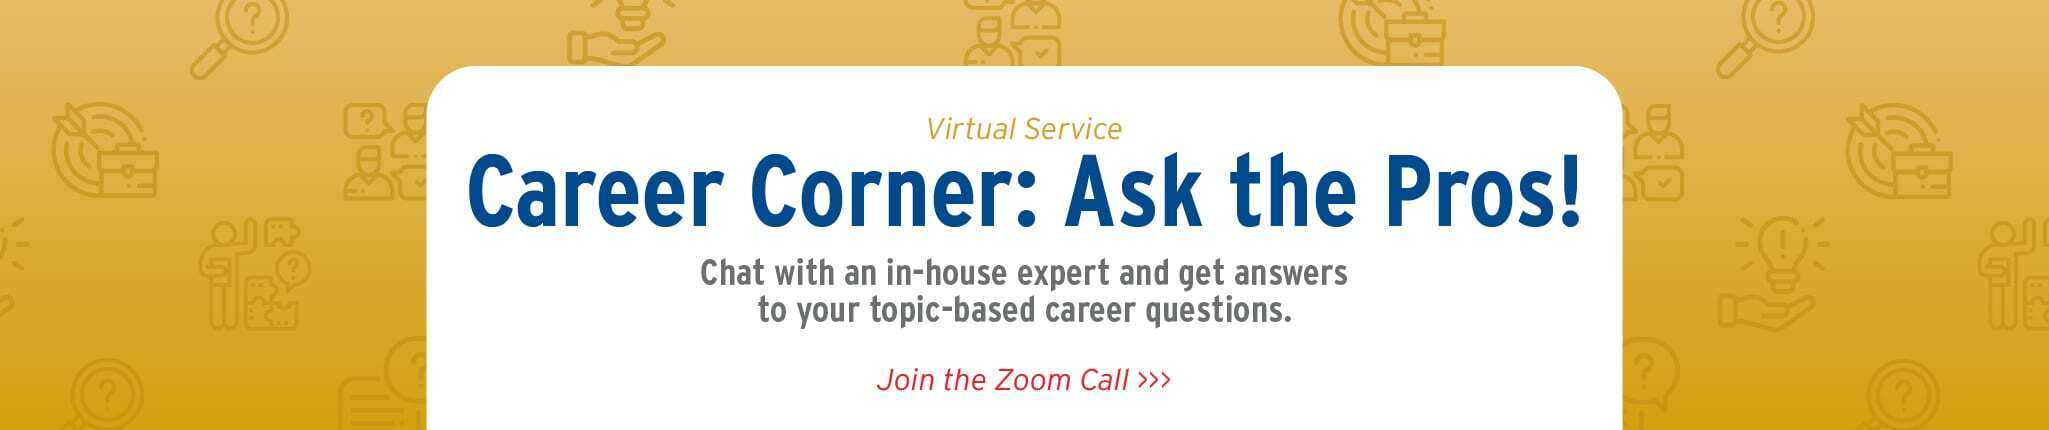 Career Corner: Ask the Pros